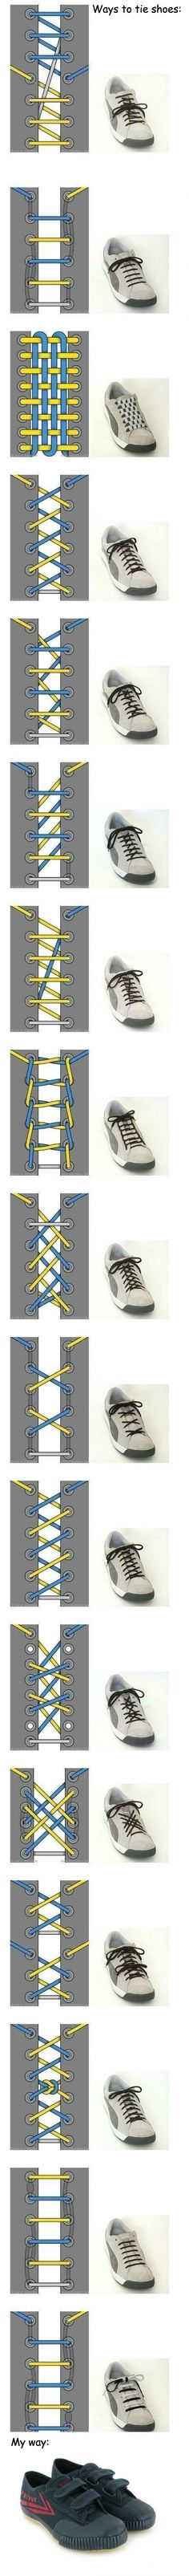 YSK The different ways to tie shoes